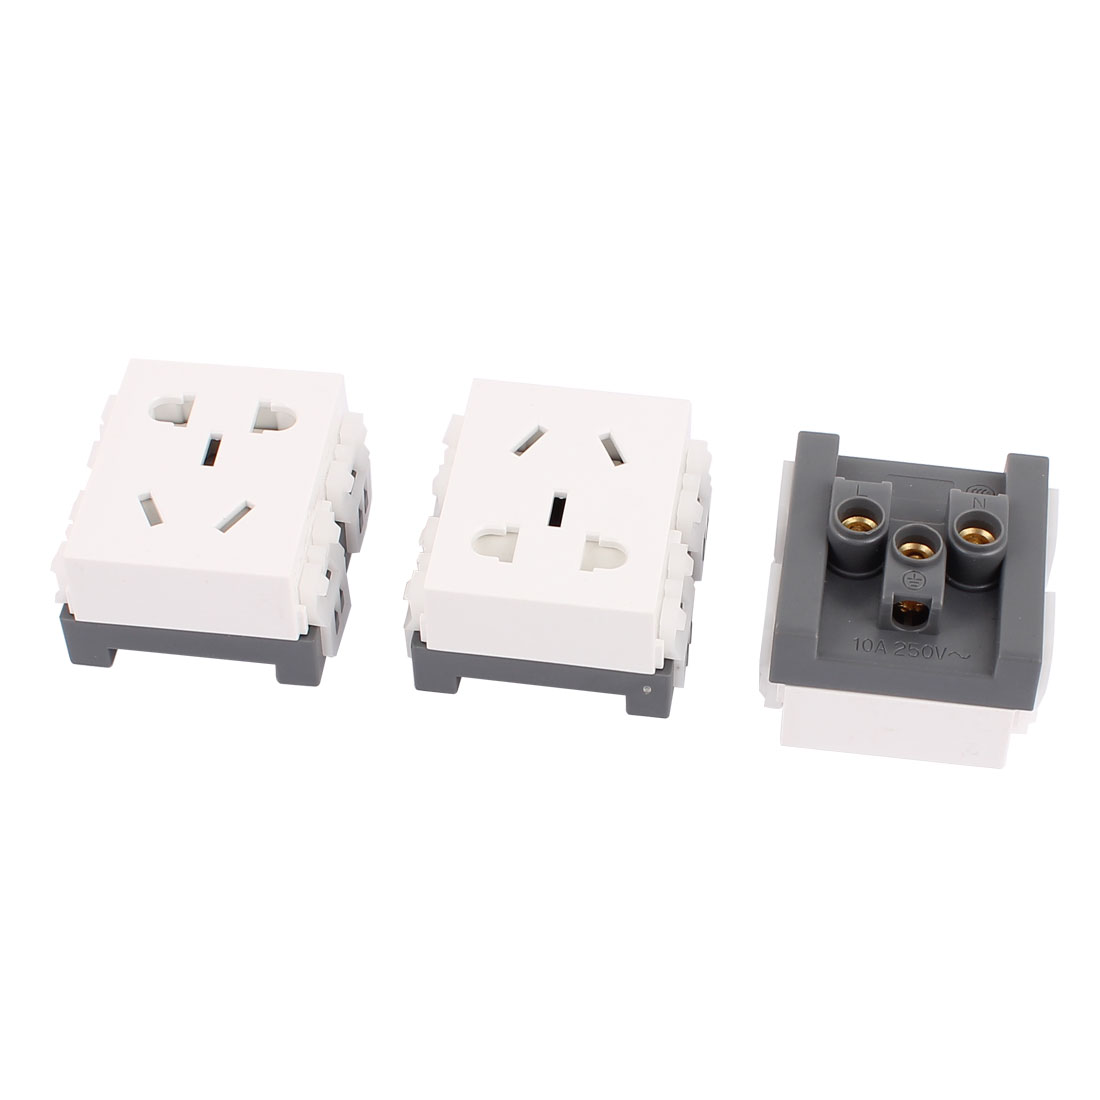 3 Pcs AC250V 10A AU EU US Socket Electrical Modular Power Outlet for 86 Wall Plate Panel